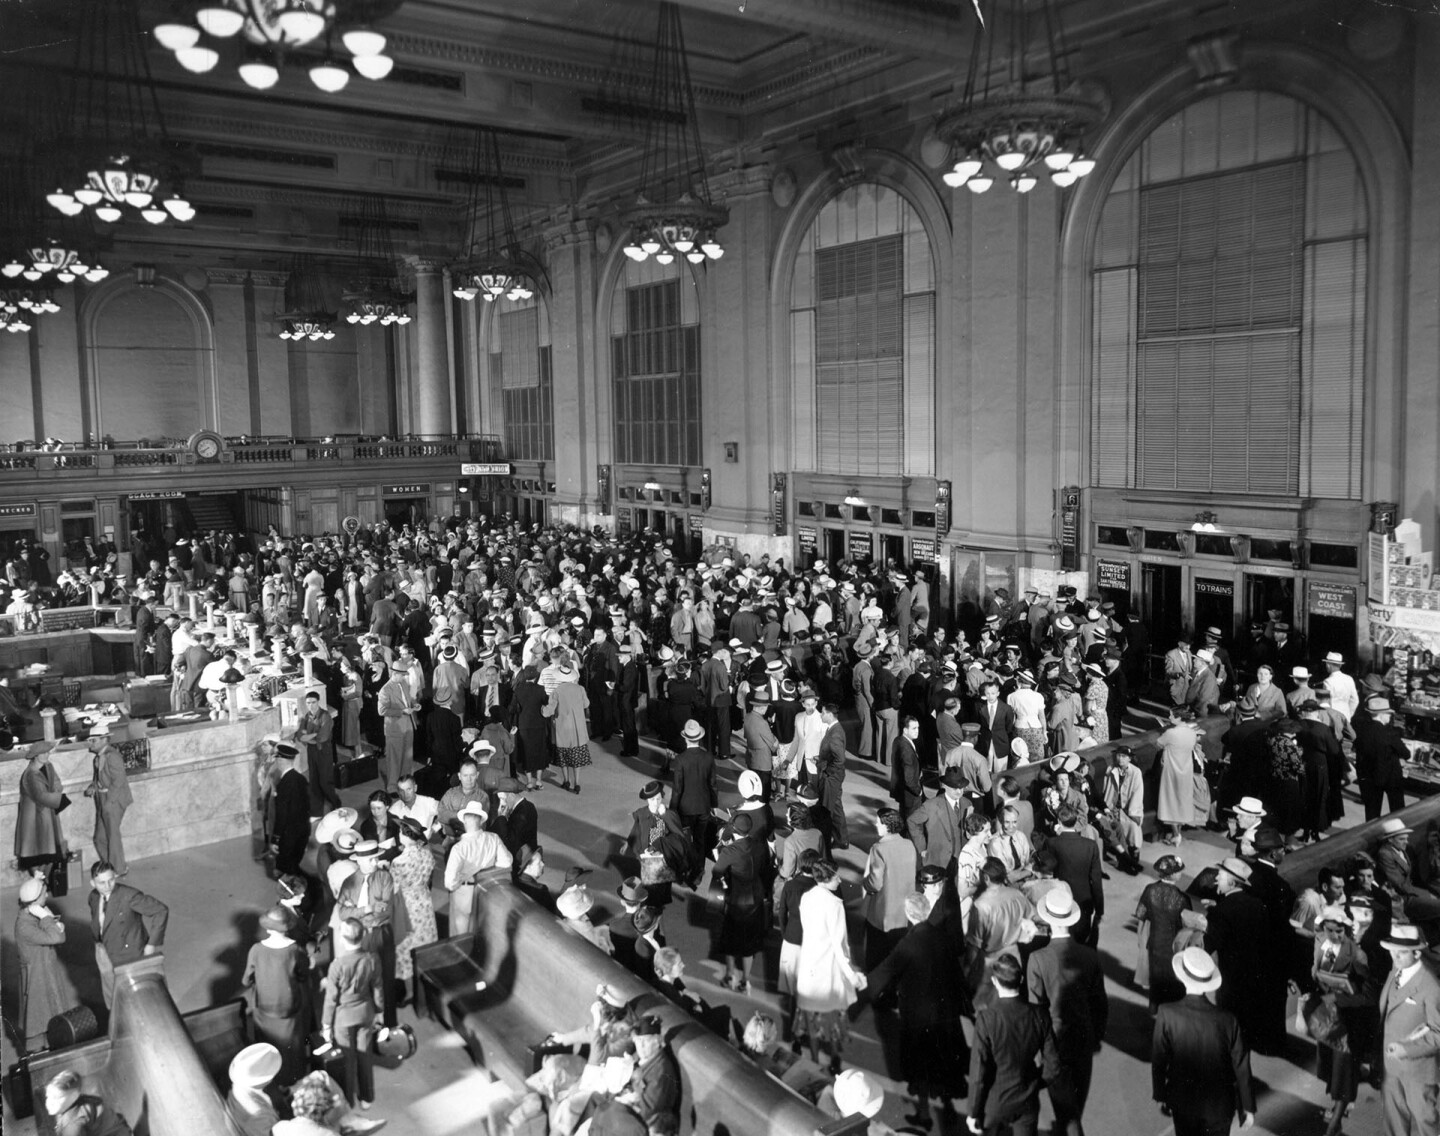 Interior view of the Central Station lobby. Courtesy of the Los Angeles Examiner Collection, USC Libraries.